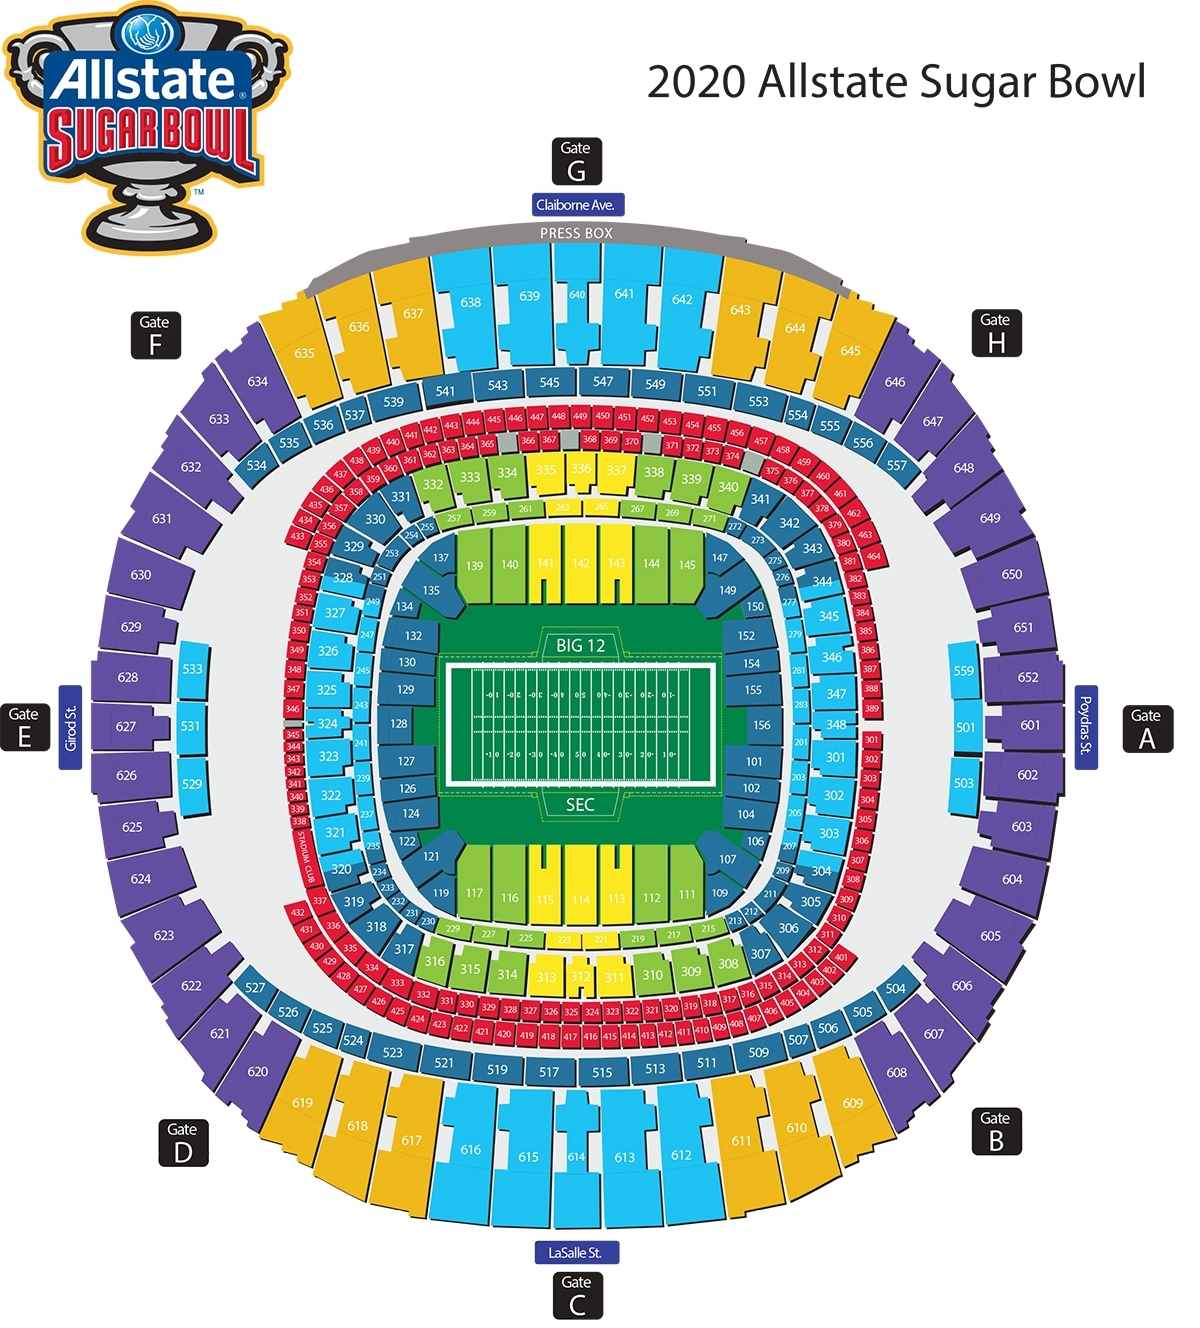 Seating Diagram - Official Site Of The Allstate Sugar Bowl in New Orleans Super Bowl Seating Chart